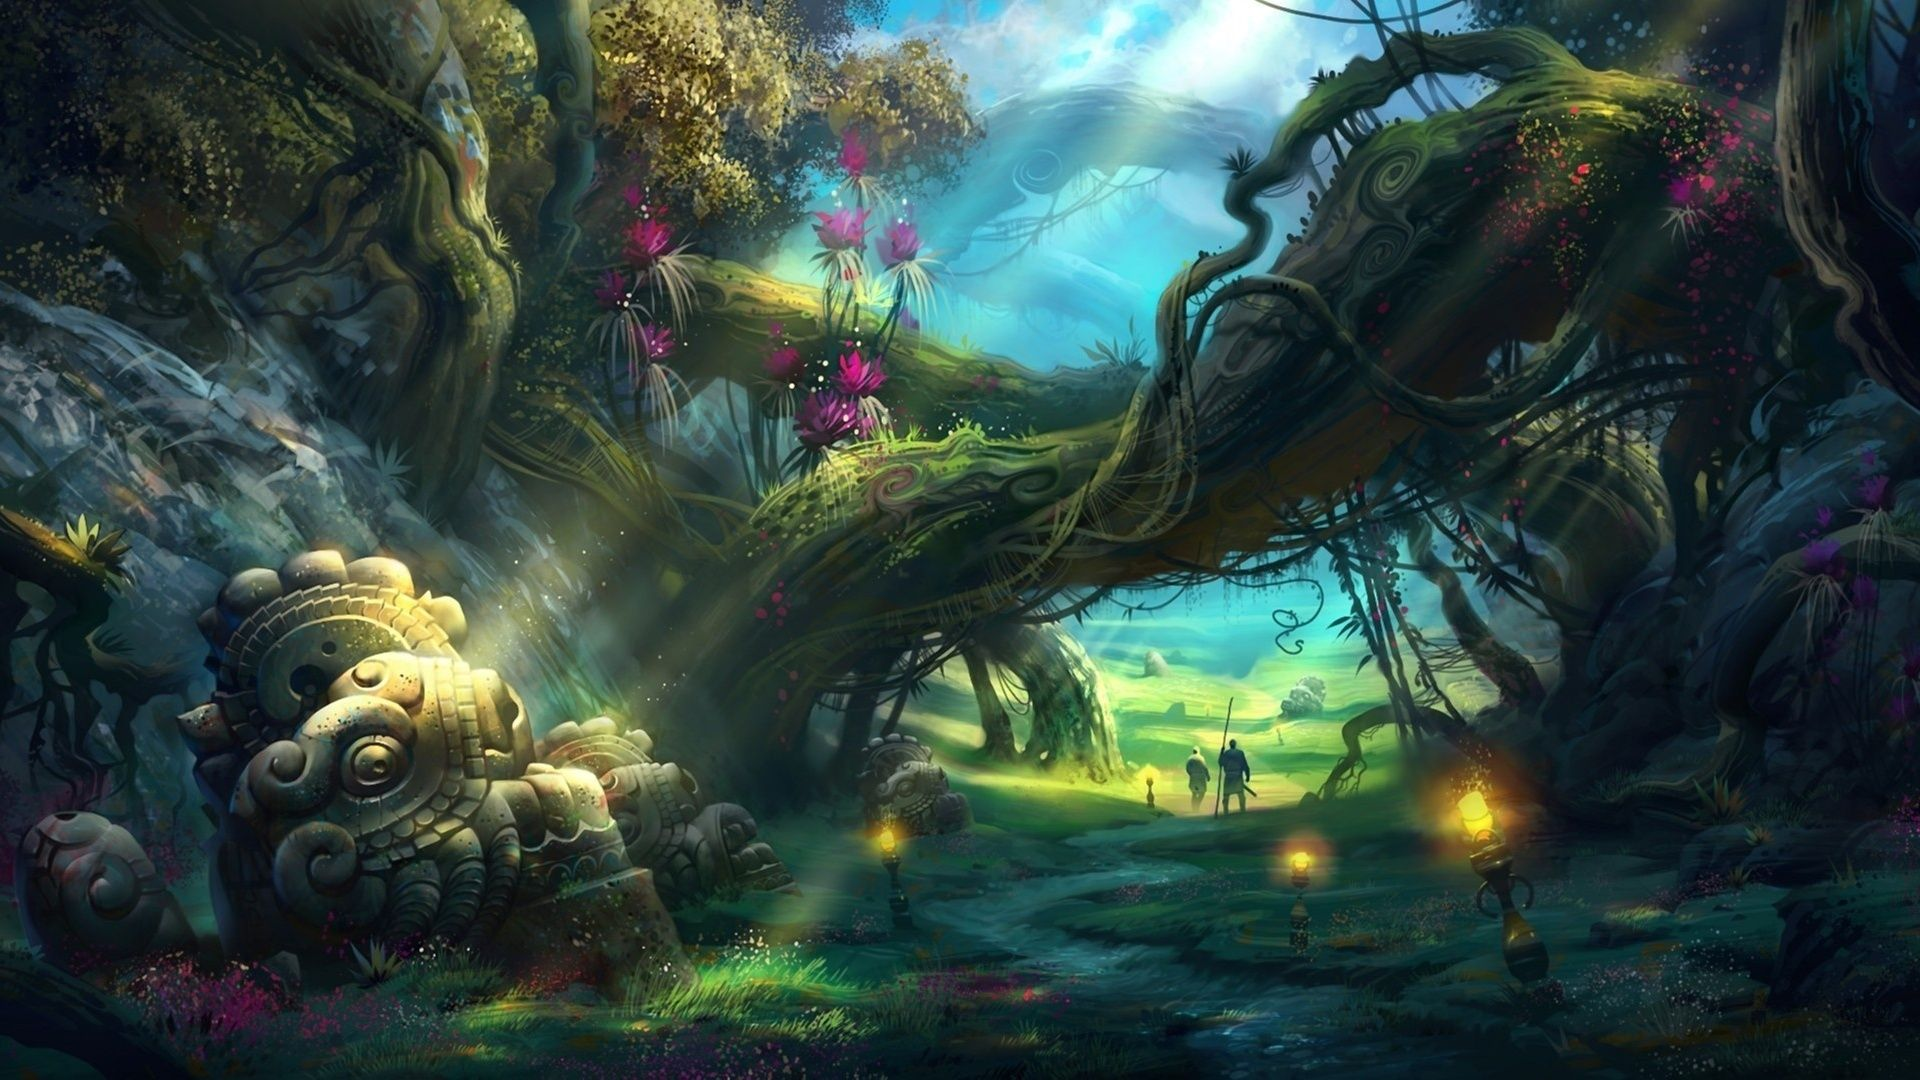 Hd Wallpaper Computer Wallpapers Desktop Backgrounds 1920x1080 Id Fantasy Art Landscapes Fantasy Forest Fantasy Landscape